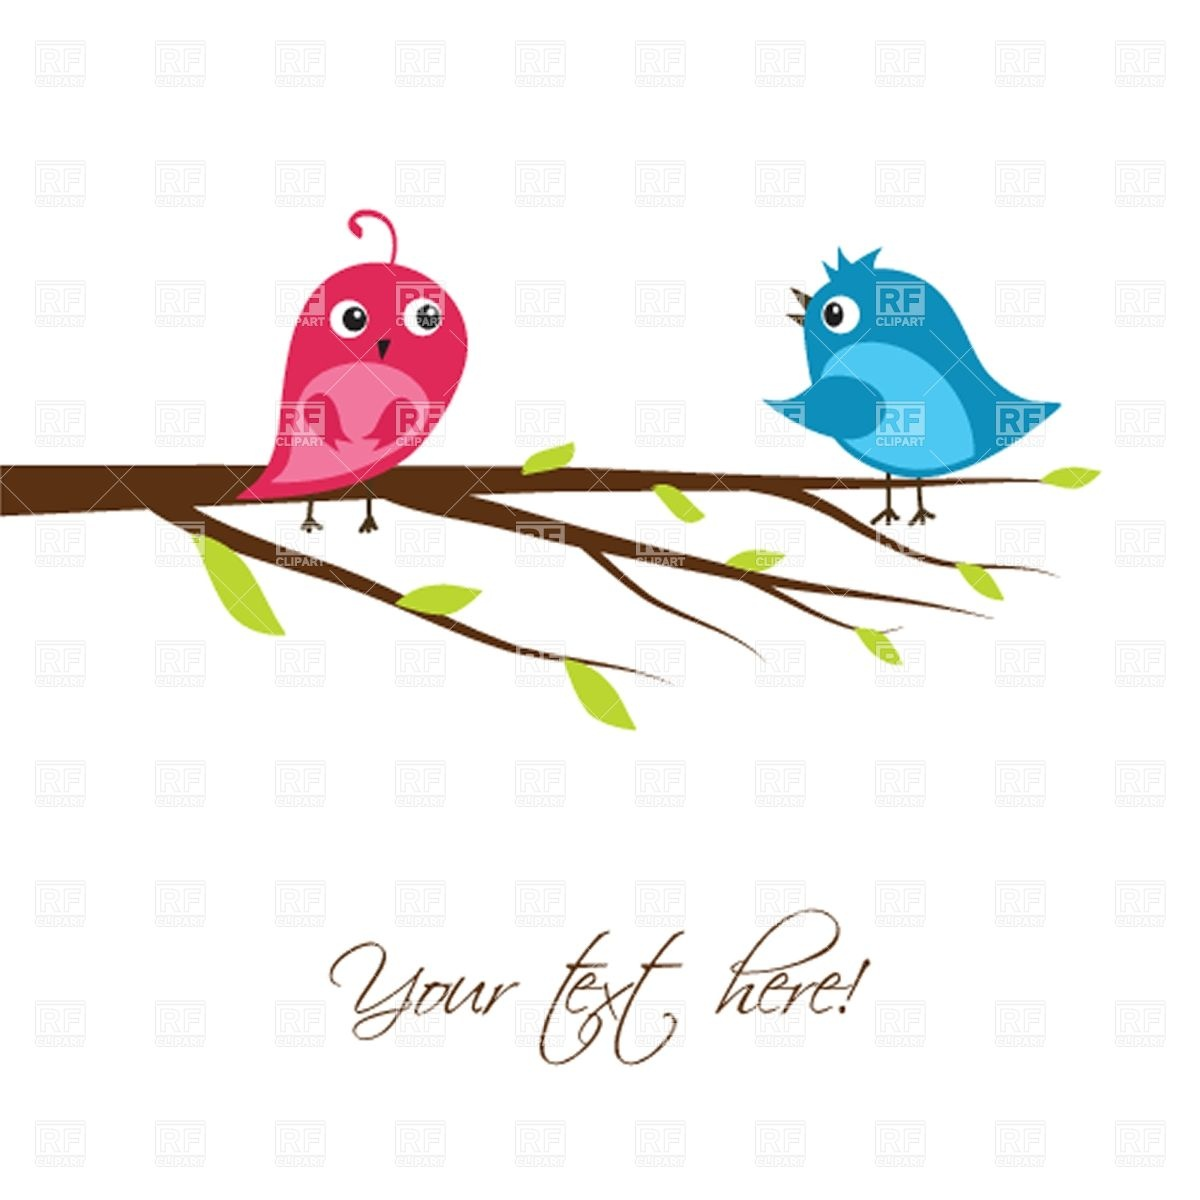 Couple Of Cute Birds On The Tree Branch Plants And Animals Download